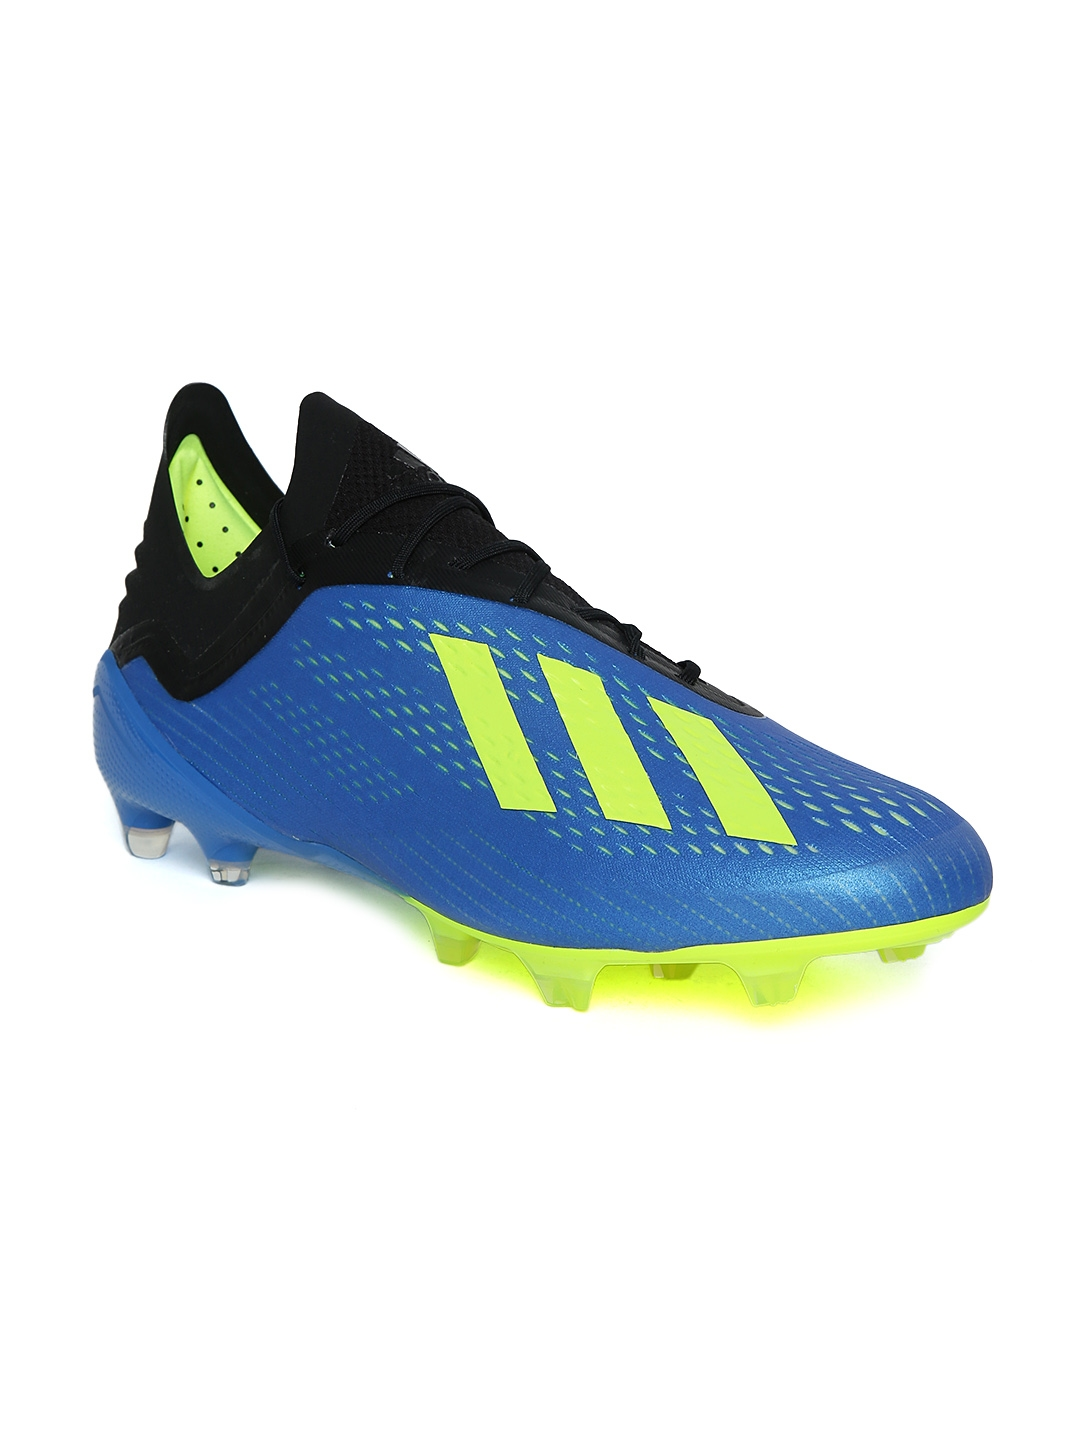 baf0fa8209b8 Buy ADIDAS Men Blue   Black X 18.1 Firm Ground Football Shoes ...